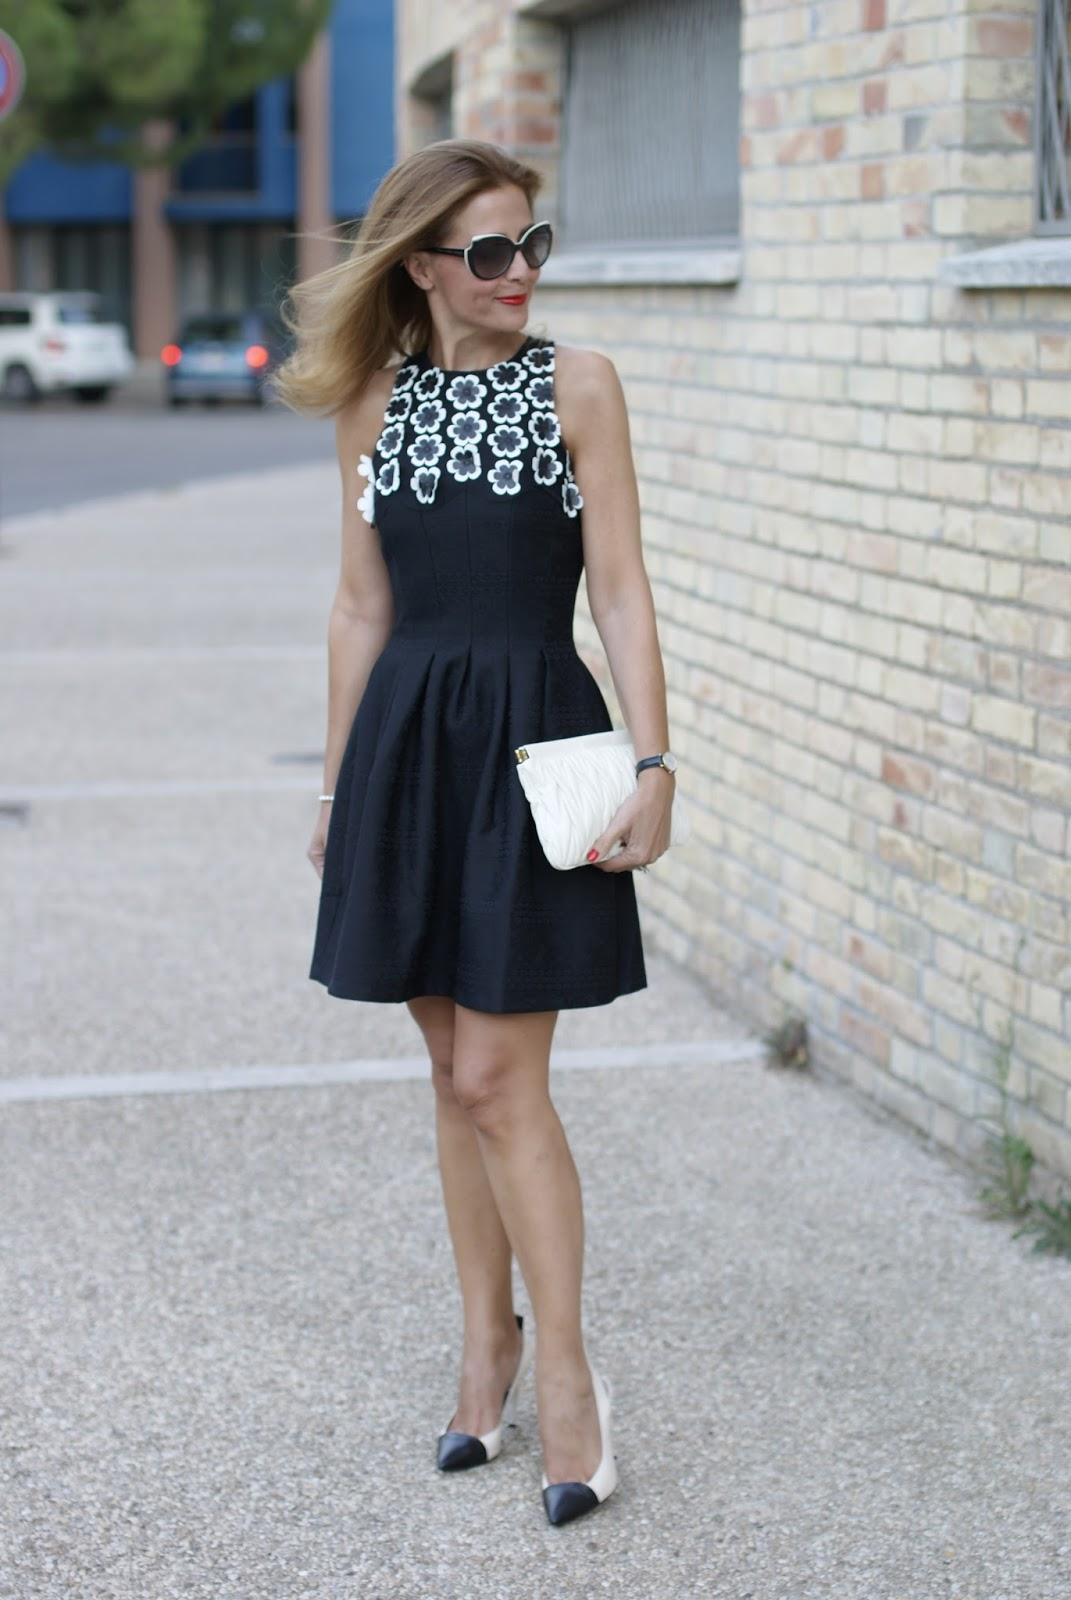 #DesigualSales black dress with 3d flowers and cap toe pumps on Fashion and Cookies fashion blog, fashion blogger style